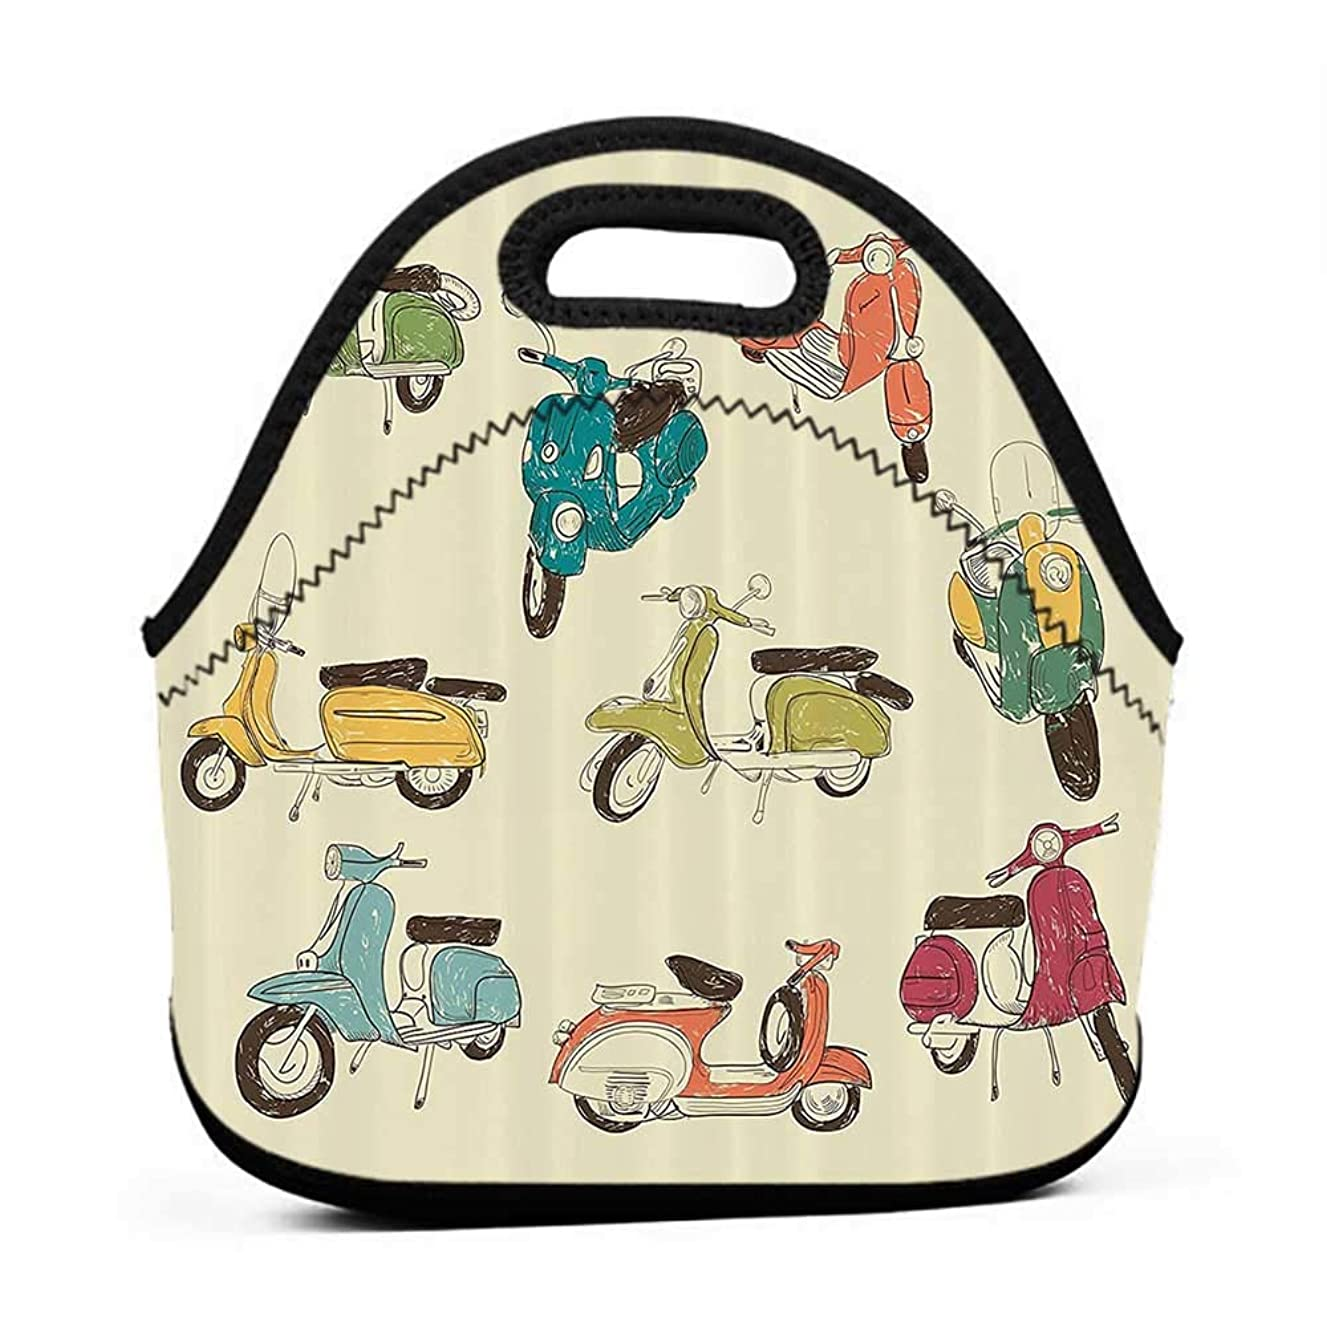 Rugged Lunchbox 1960s Decorations Collection,Scooters Daring Romantic Aged History Motor Trip Street Town Power Retro Art,Soft Green Yellow Blue,small meal lunch bag for men